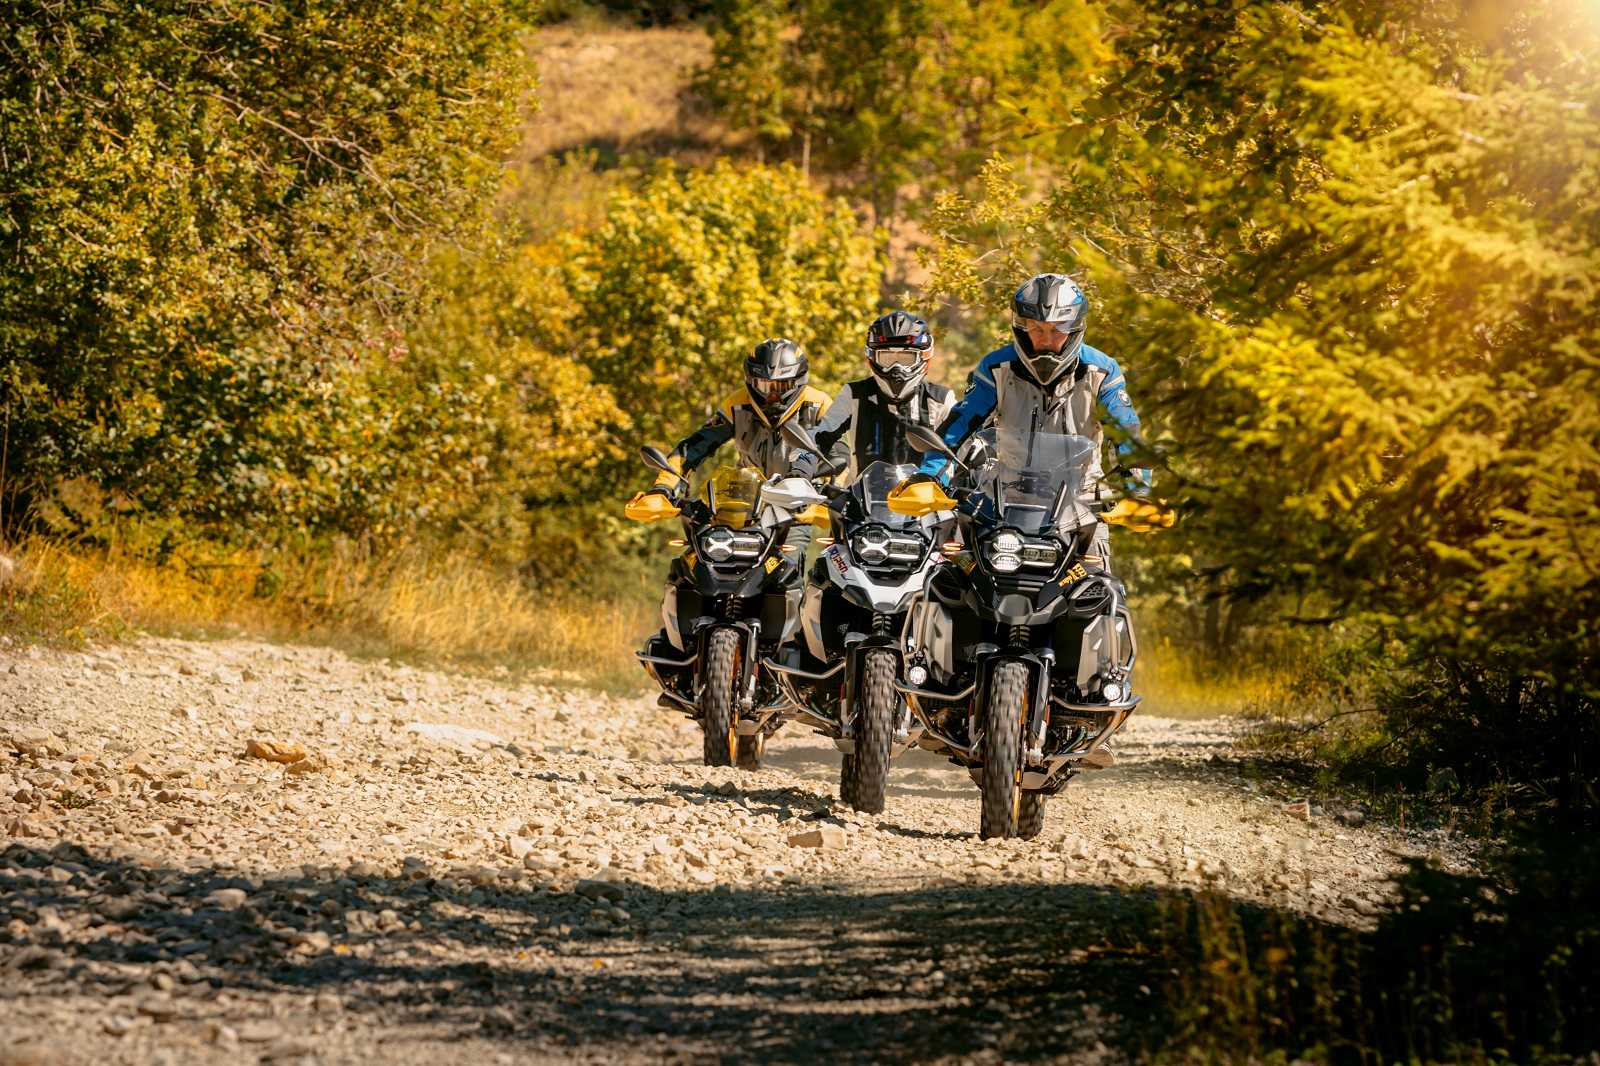 The Kings of Adventure in their new avatars The new BMW R 20 GS ...